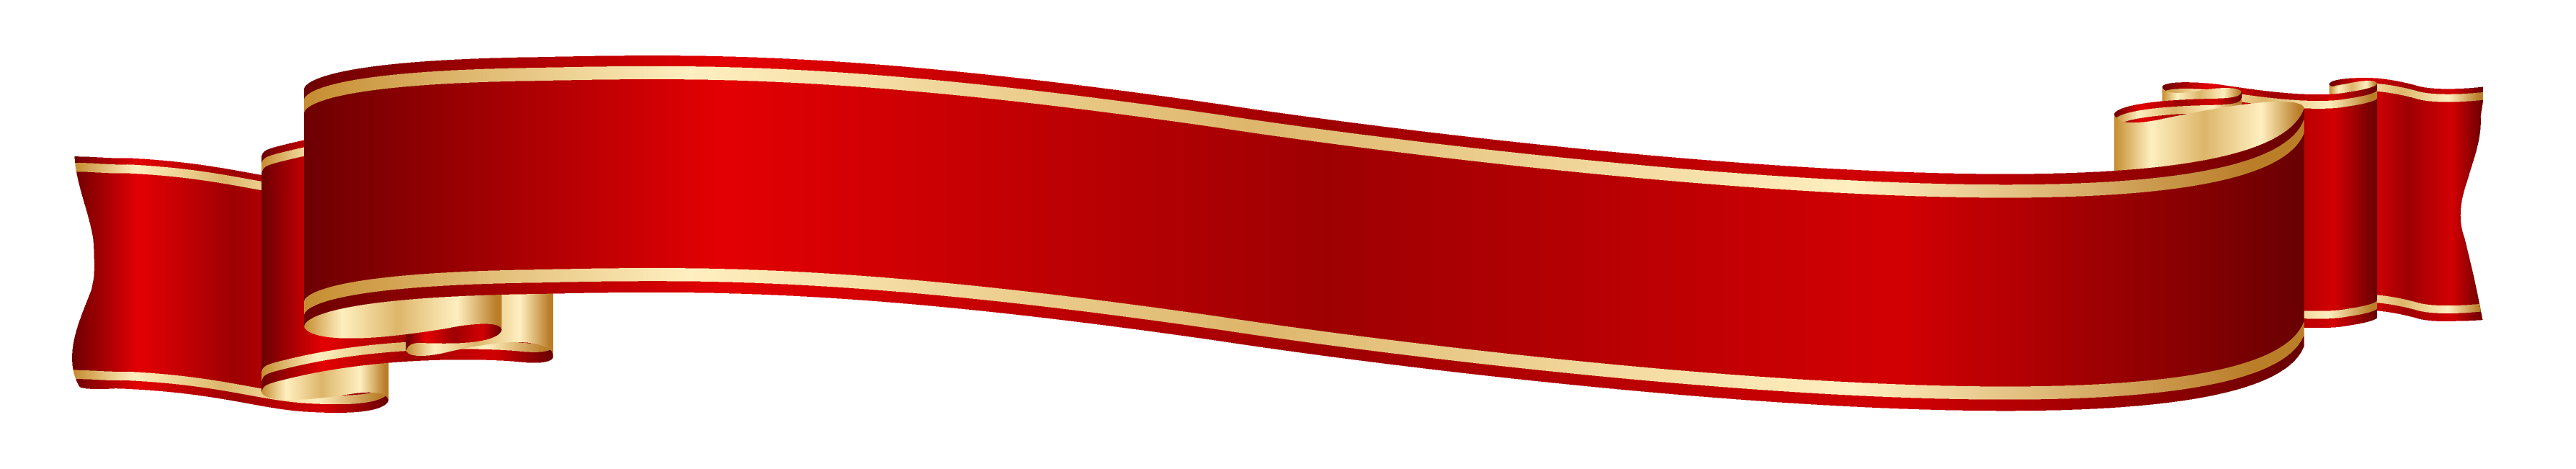 3576x651 Red And Gold Banner Png Clipart Picture